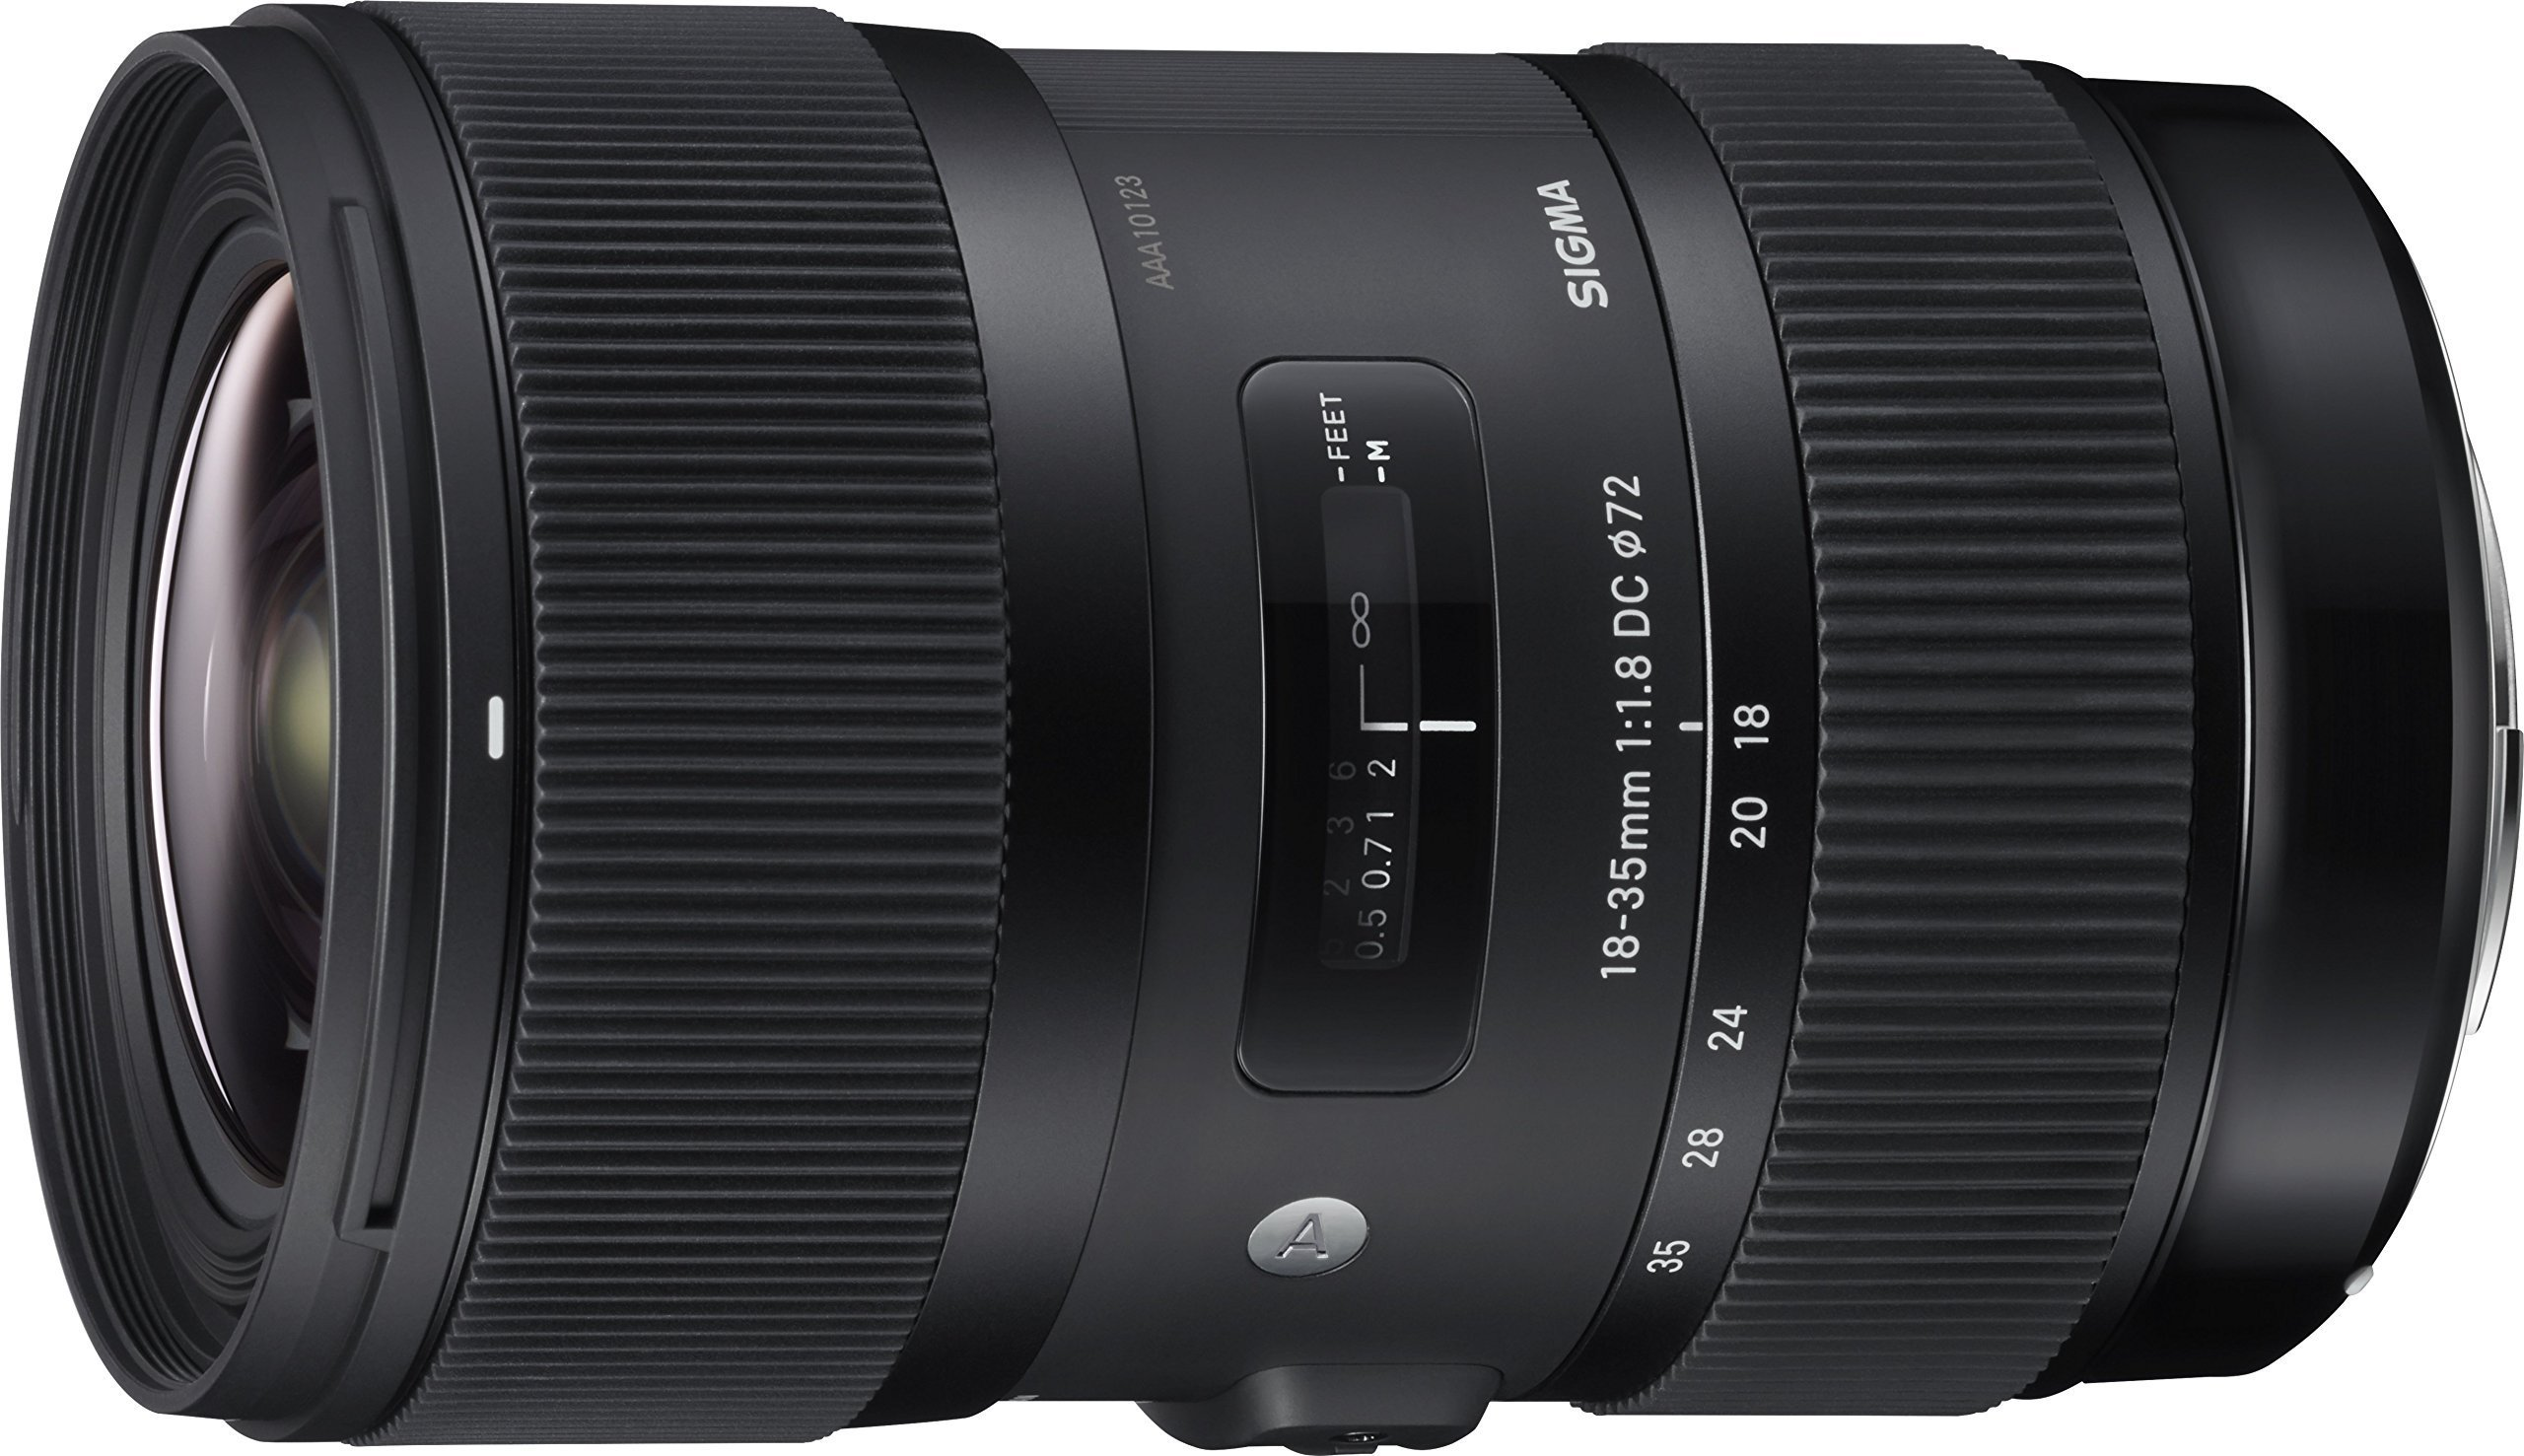 Sigma 18-35mm F1.8 Art DC HSM Lens for Canon by Sigma